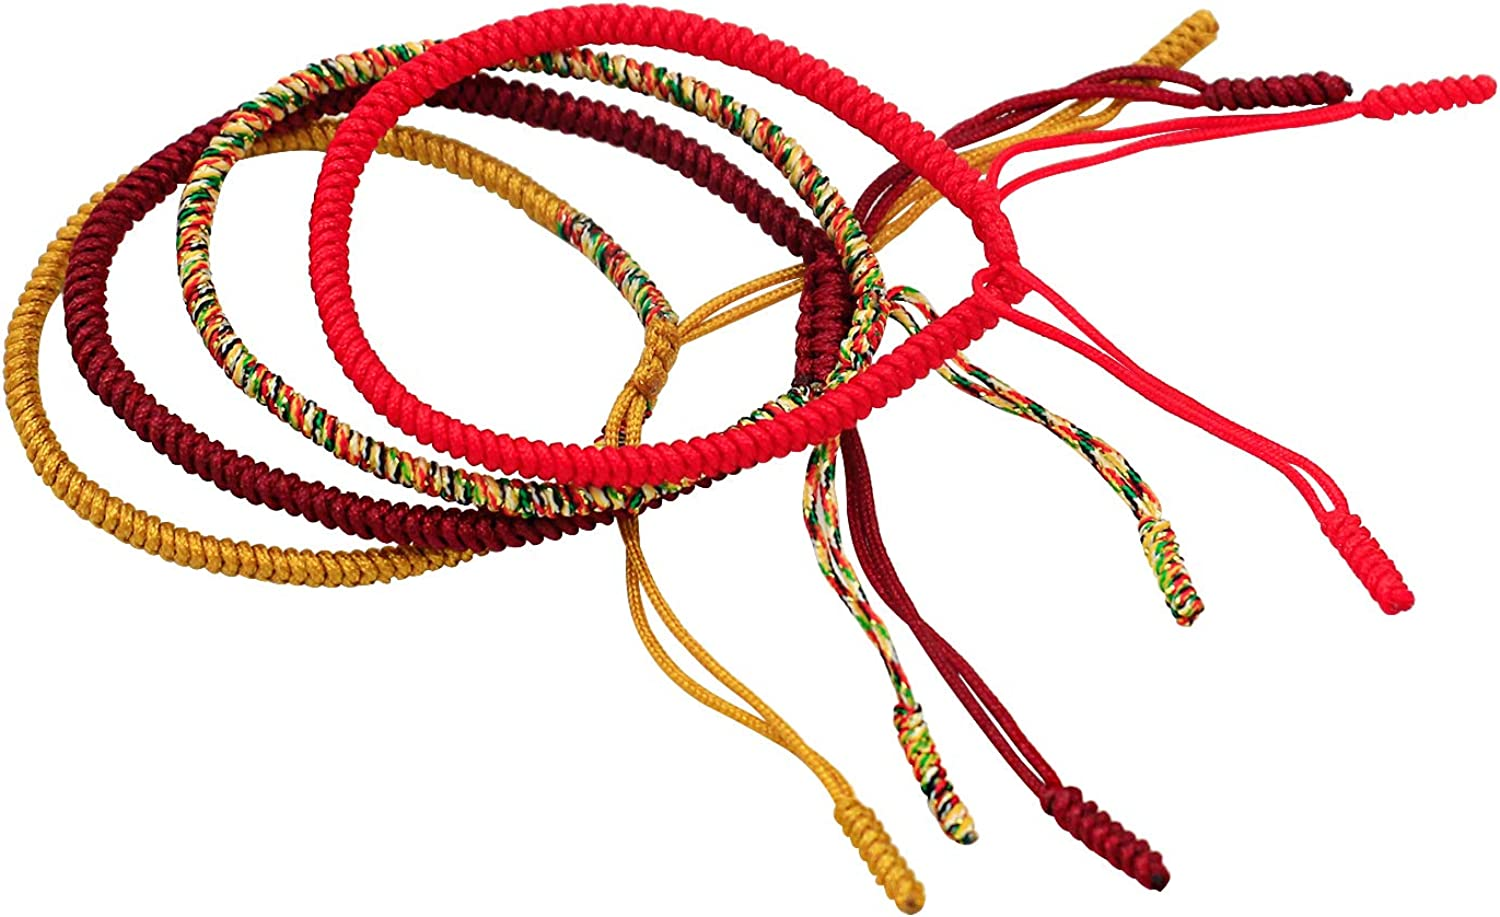 AIIGOU Tibetan Lucky Bracelet Handmade Woven Bracelets Mens Womens Lucky Red String Bracelets for Protection 4PCS